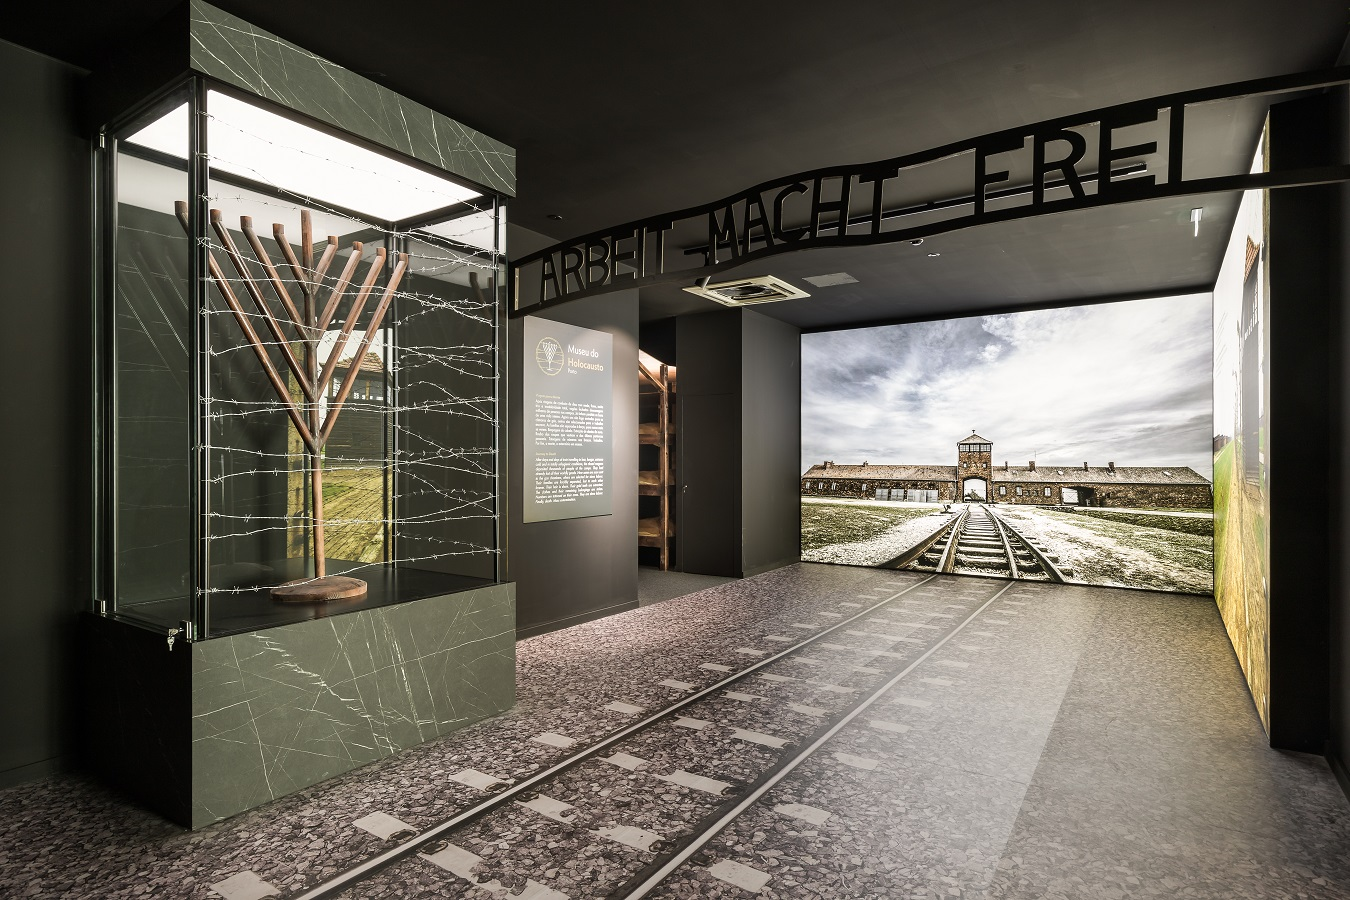 Porto vai ter Museu do Holocausto